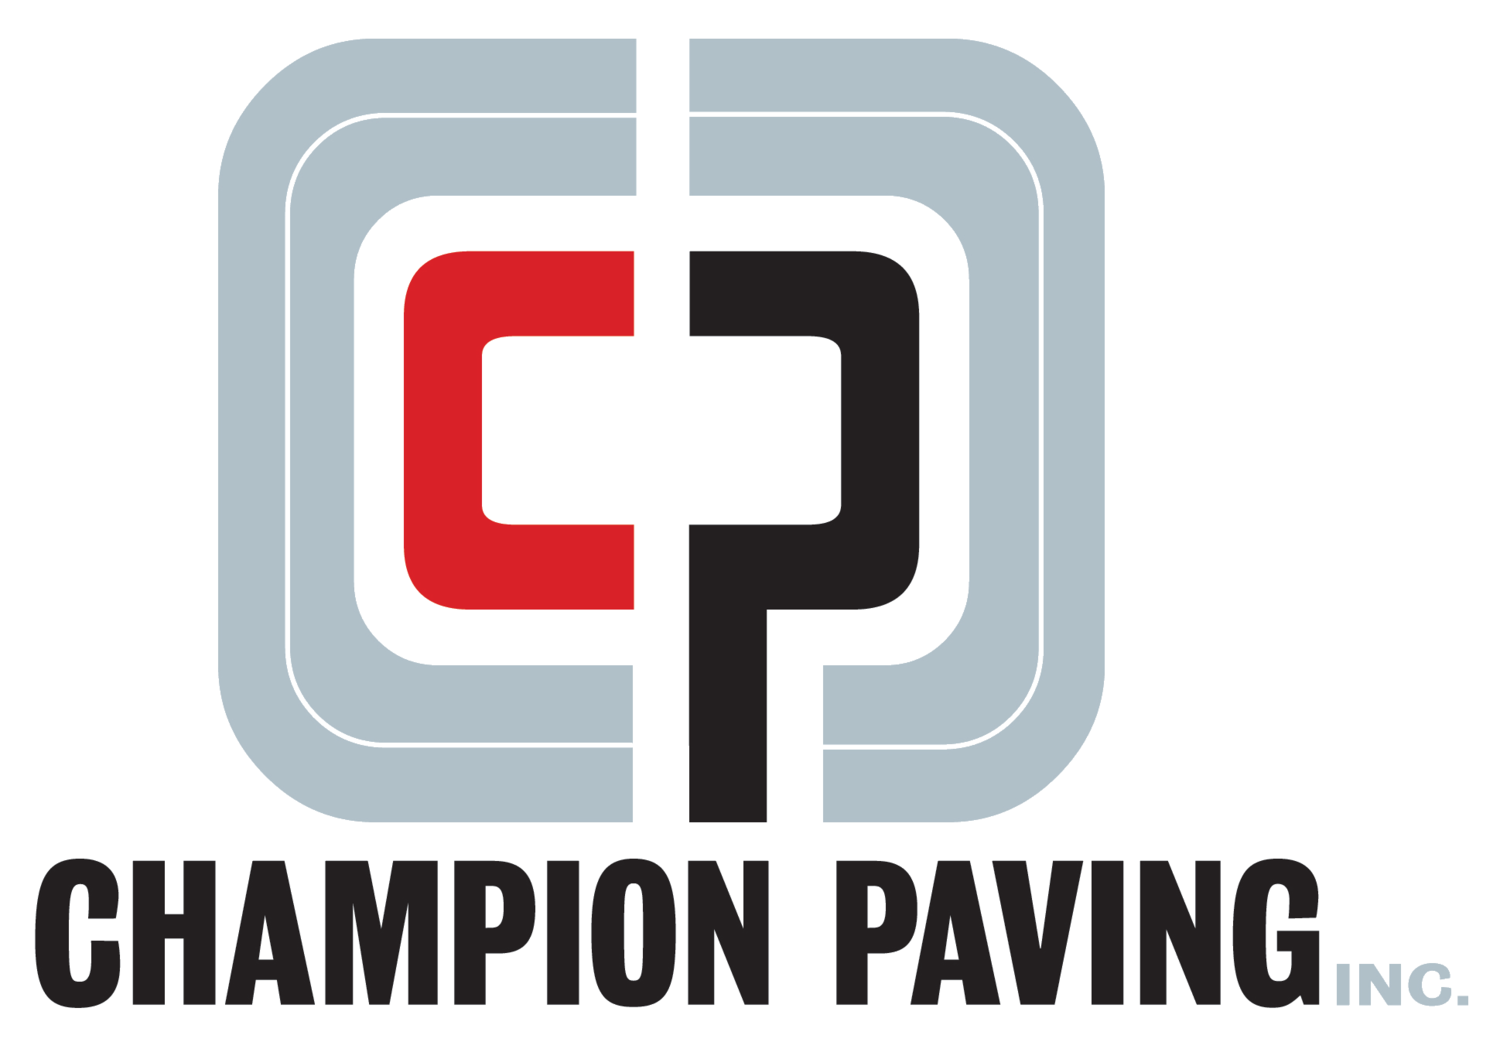 Excited clipart let's get. Contact us champion paving